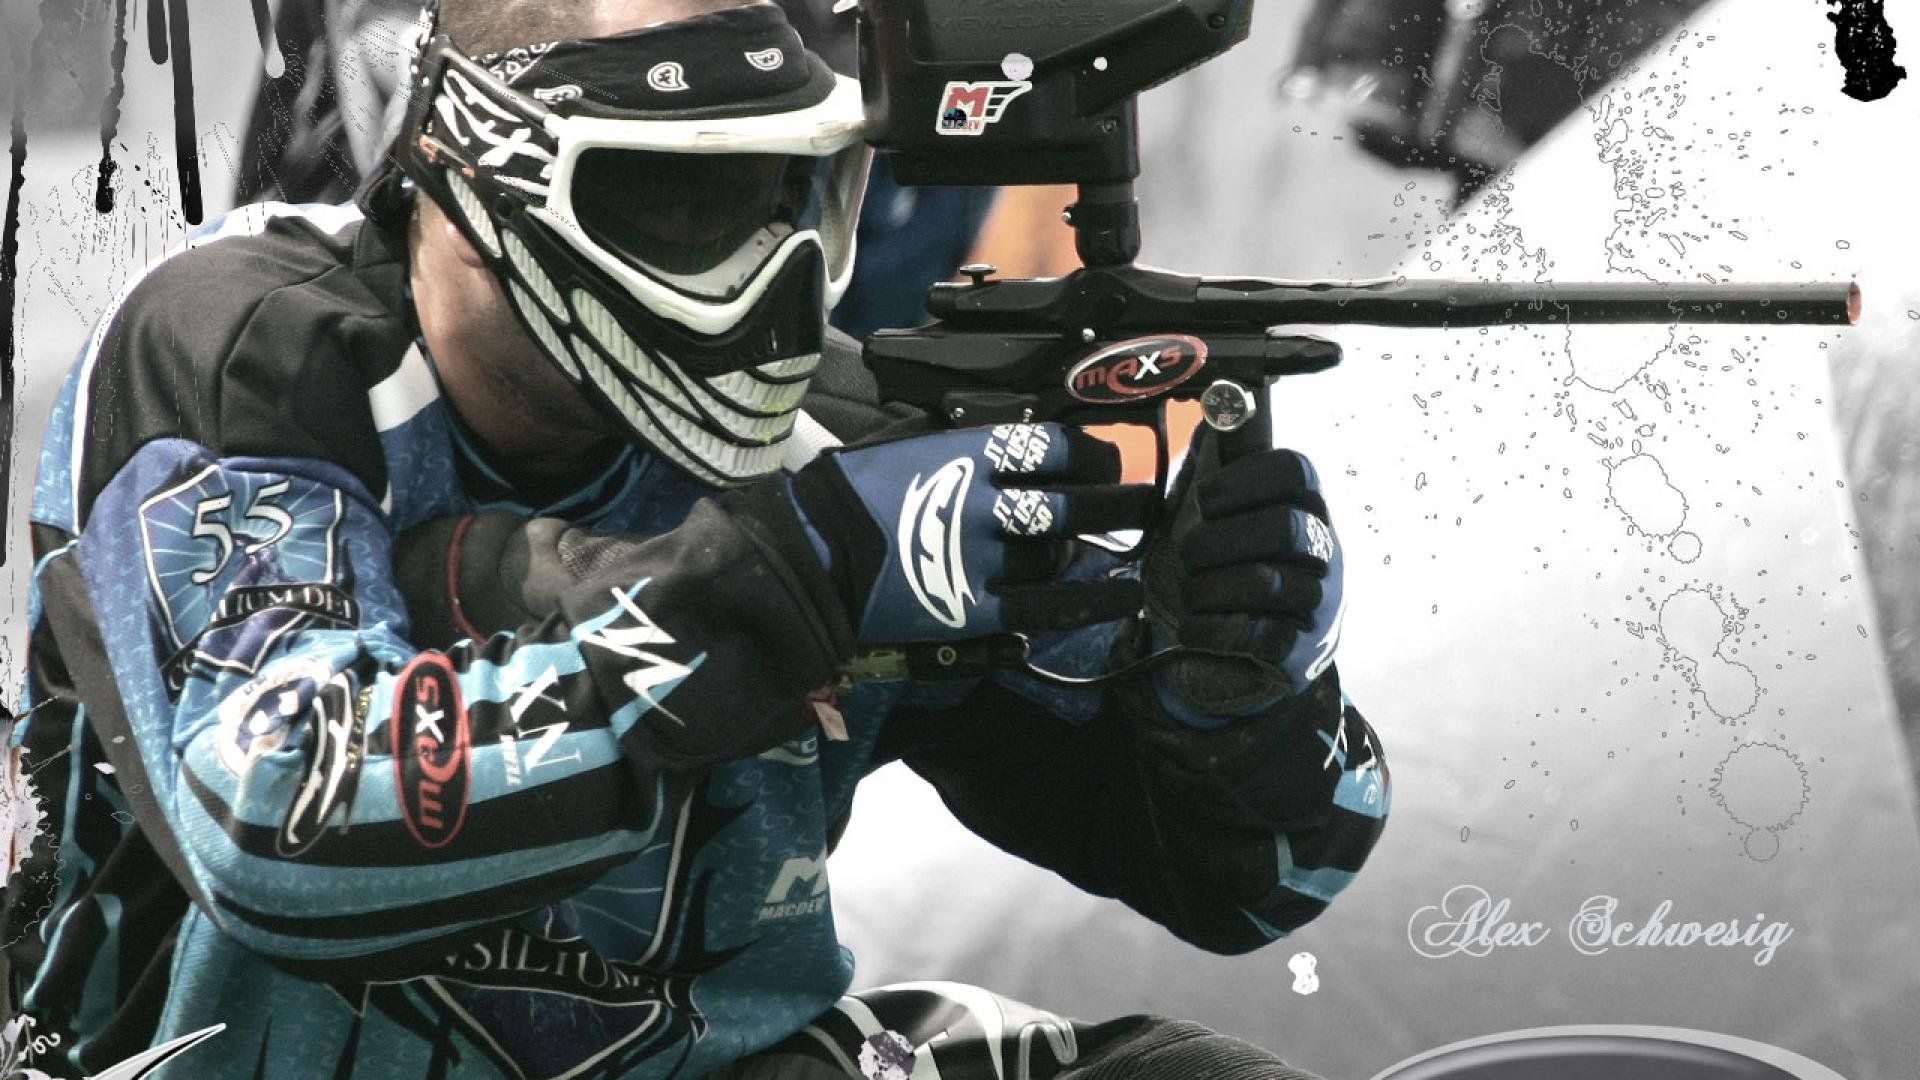 paintball wallpaper Cool Paintball Make up Pinterest 750×563 Paintball Wallpaper (44 Wallpapers)